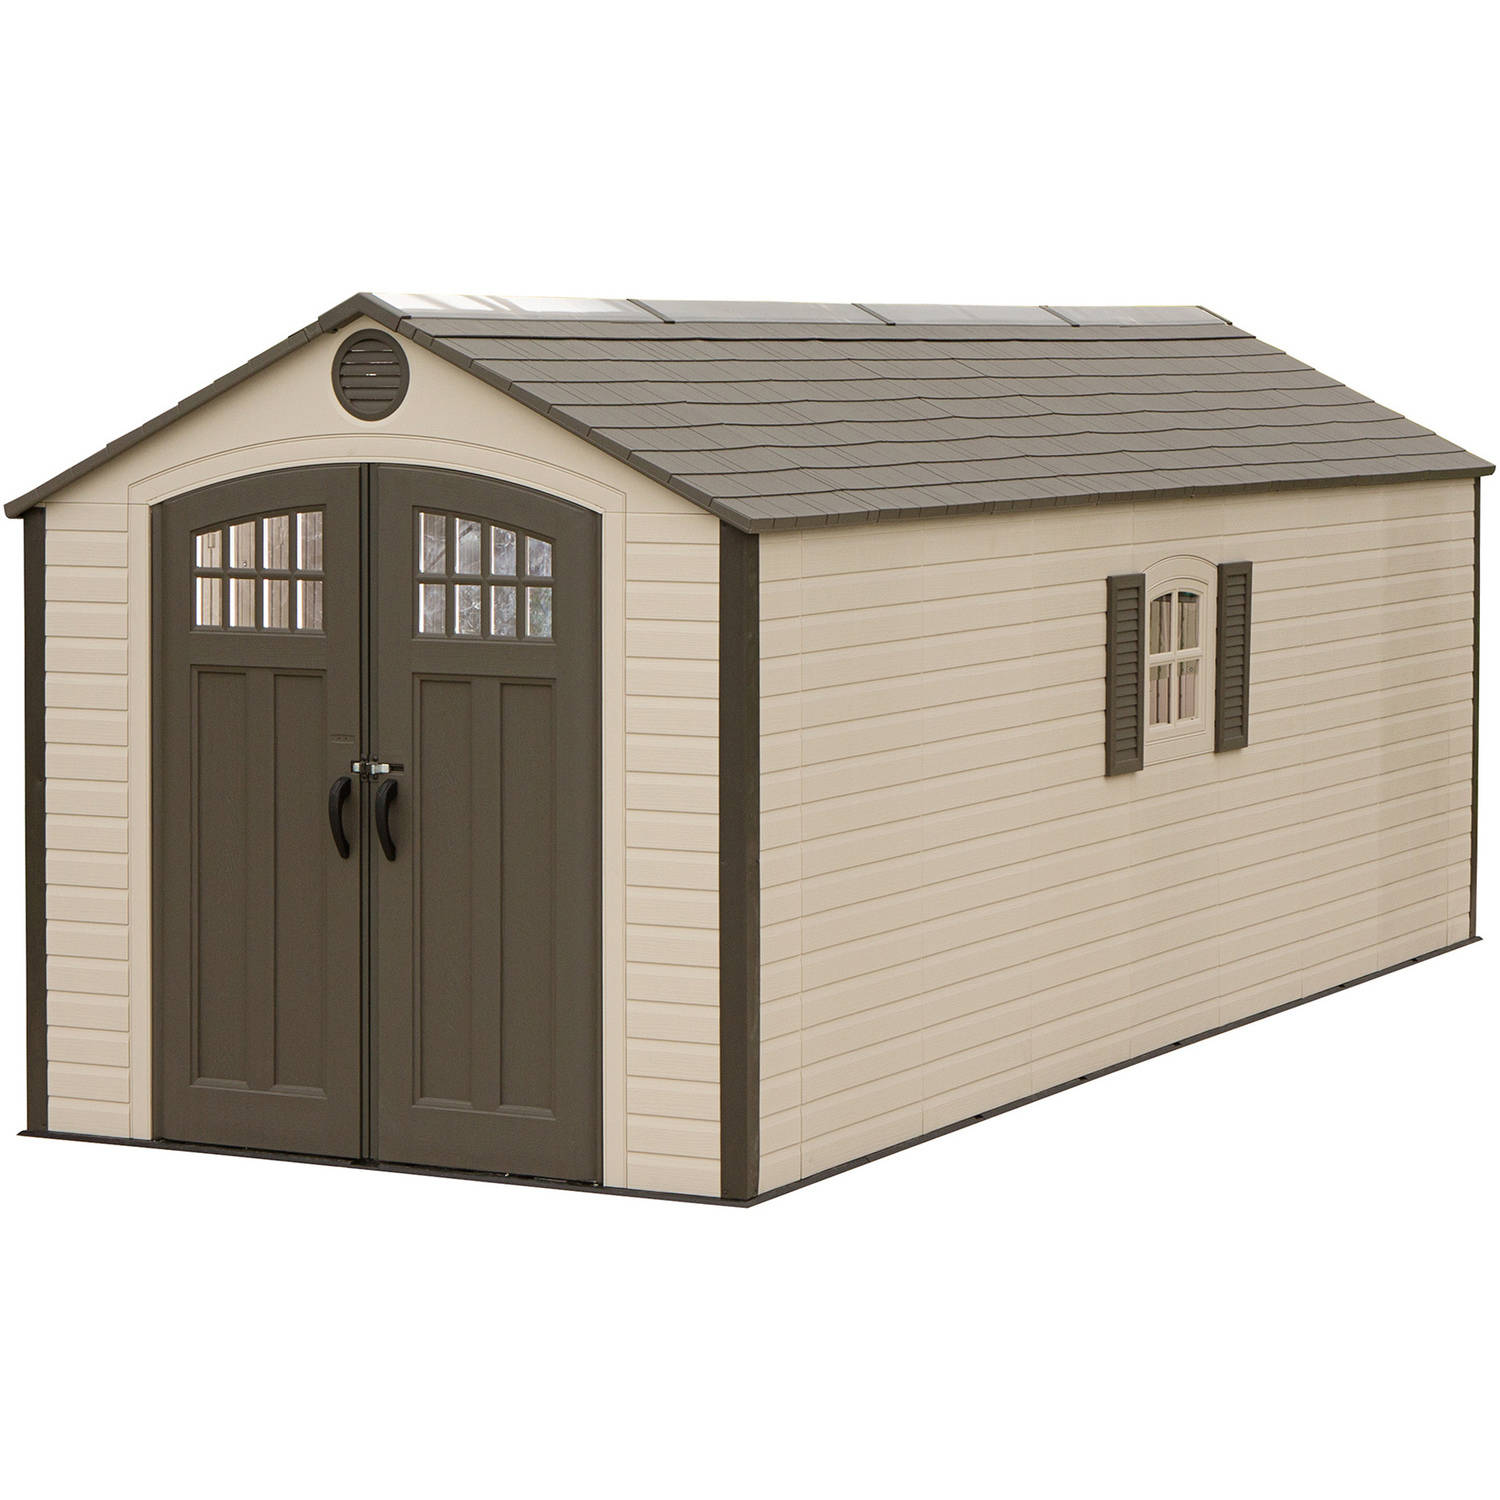 Lifetime 8 x 20 ft. Outdoor Storage Shed